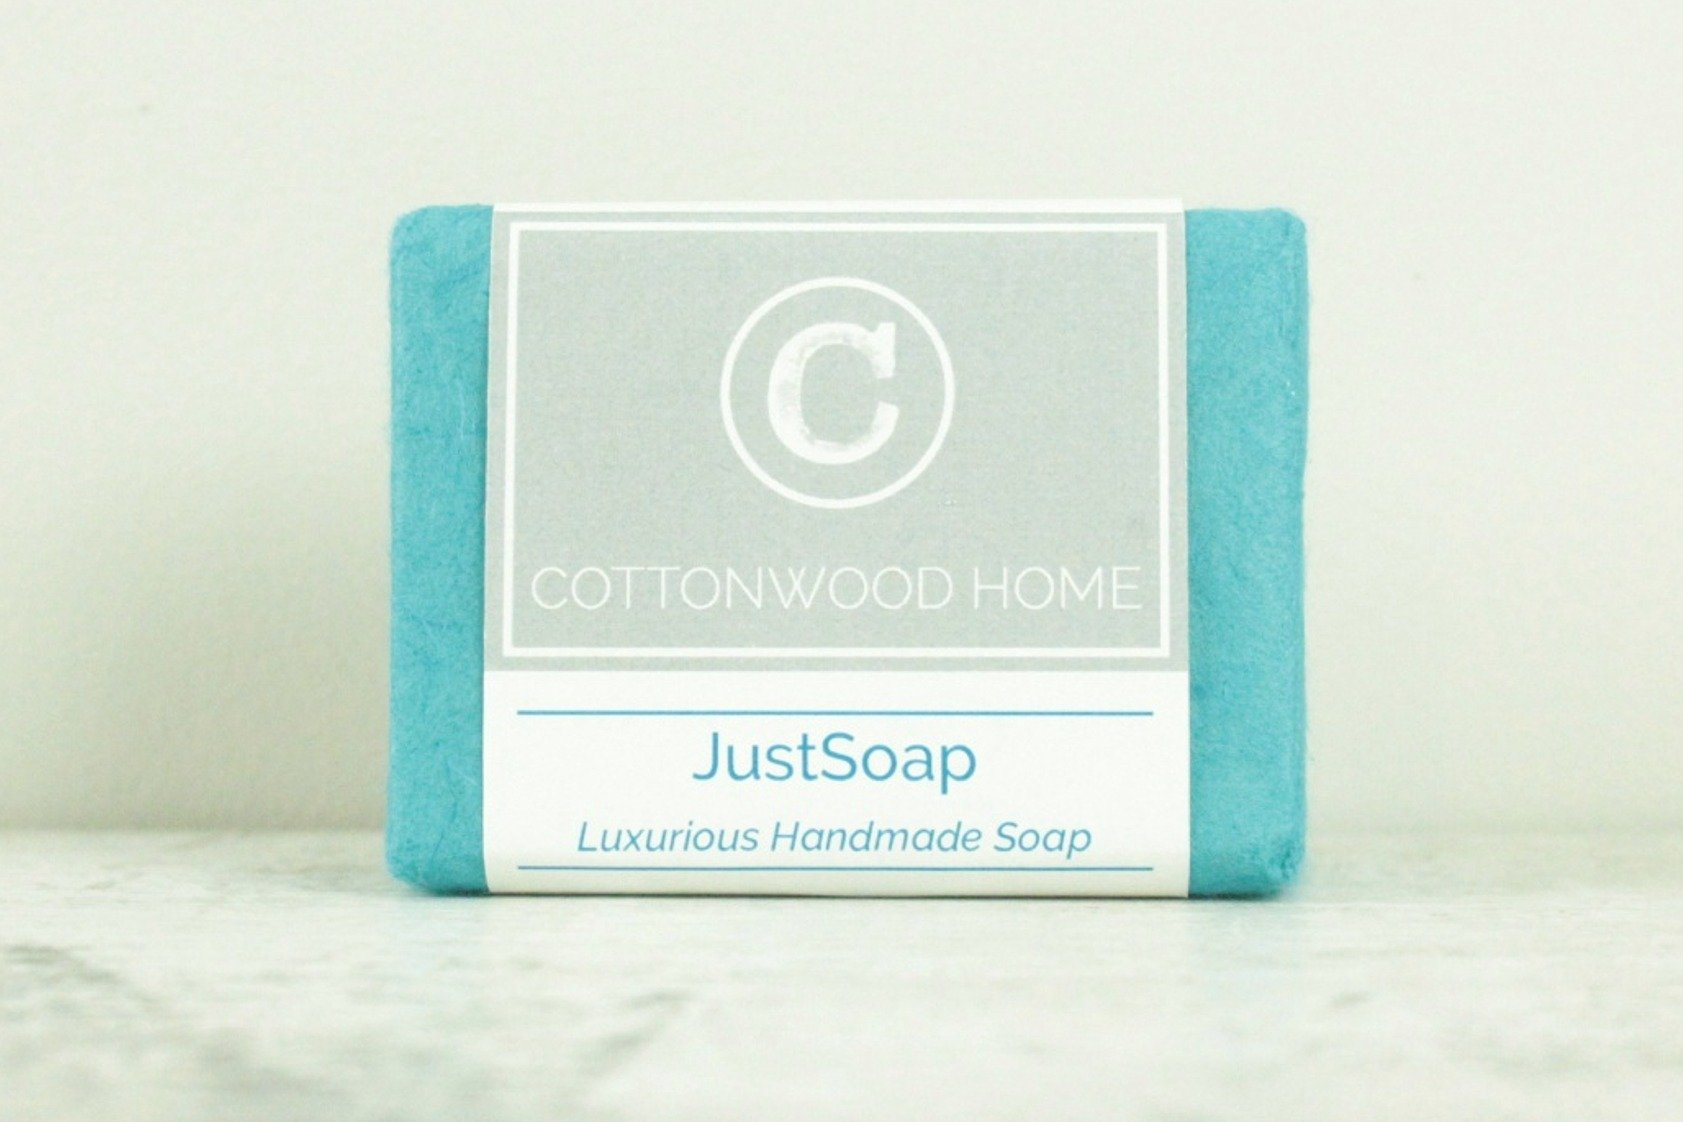 Cottonwood Soap - Just Soap